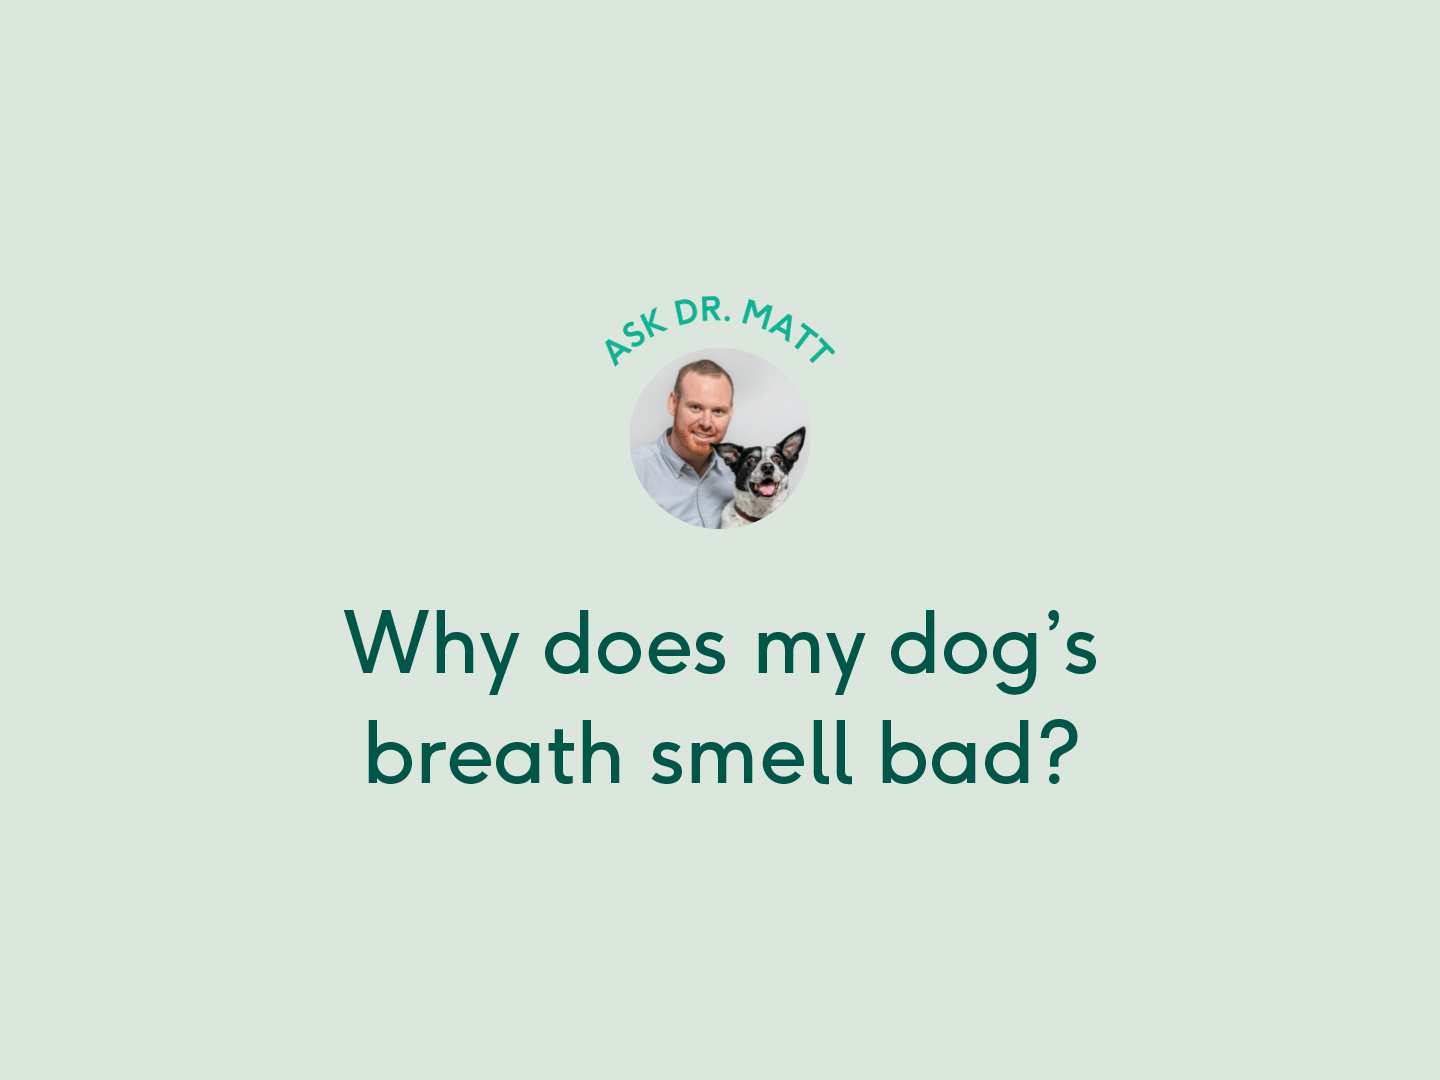 Why does my dog's breath smell bad ask Dr. Matt